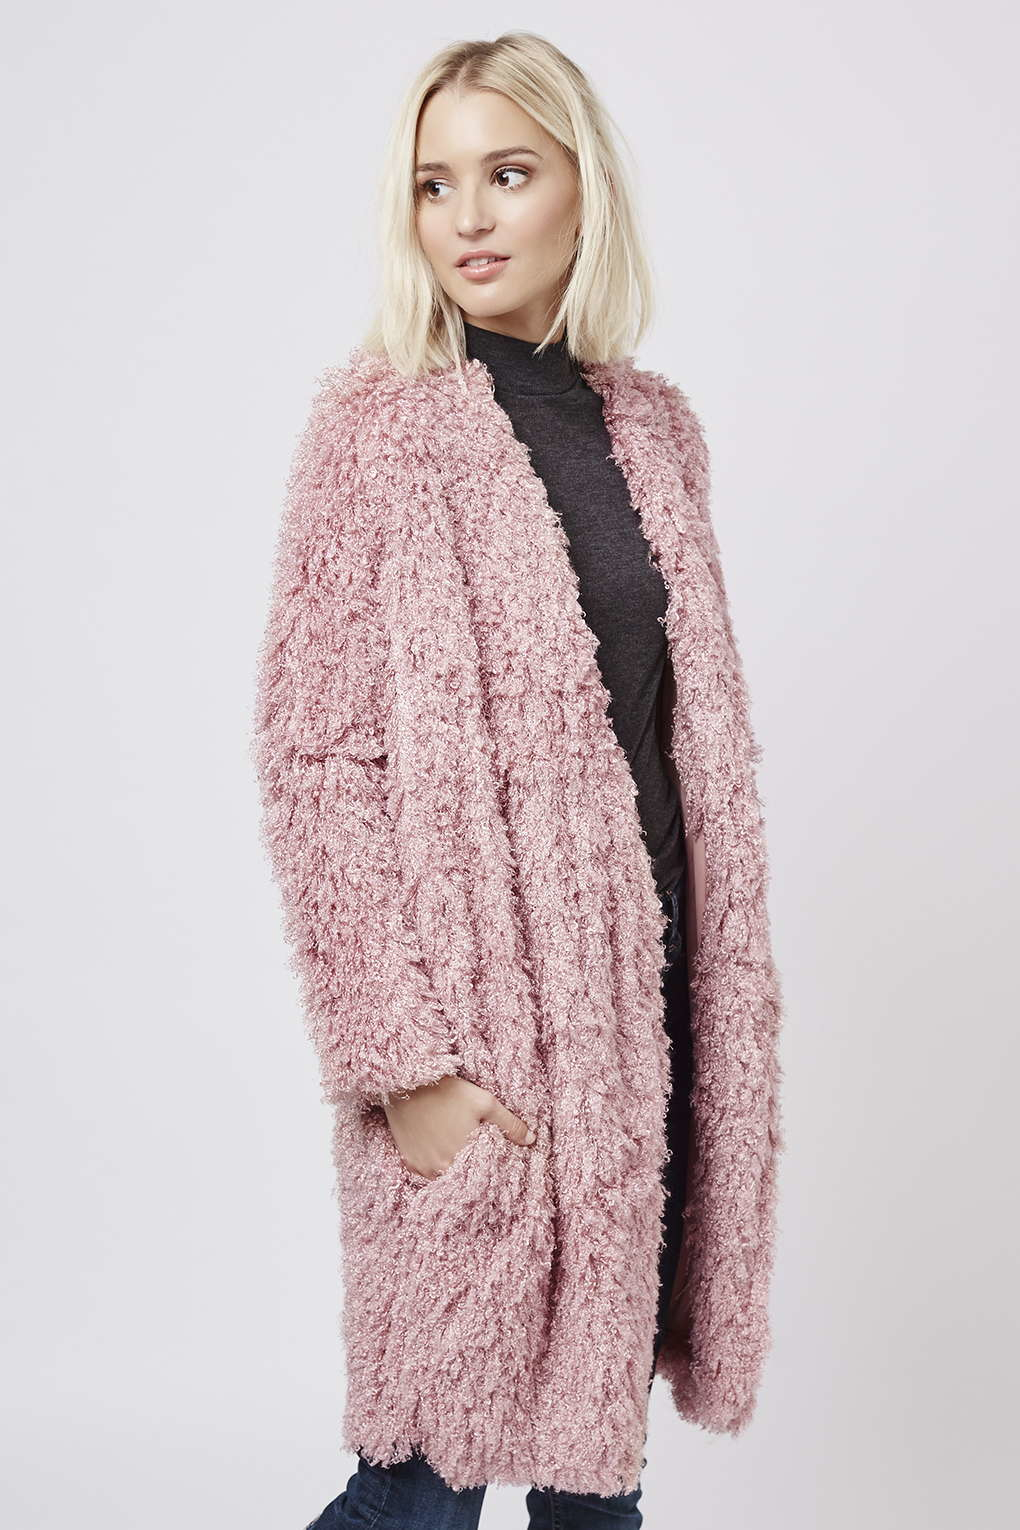 Pink Topshop Coat | Fashion Women's Coat 2017